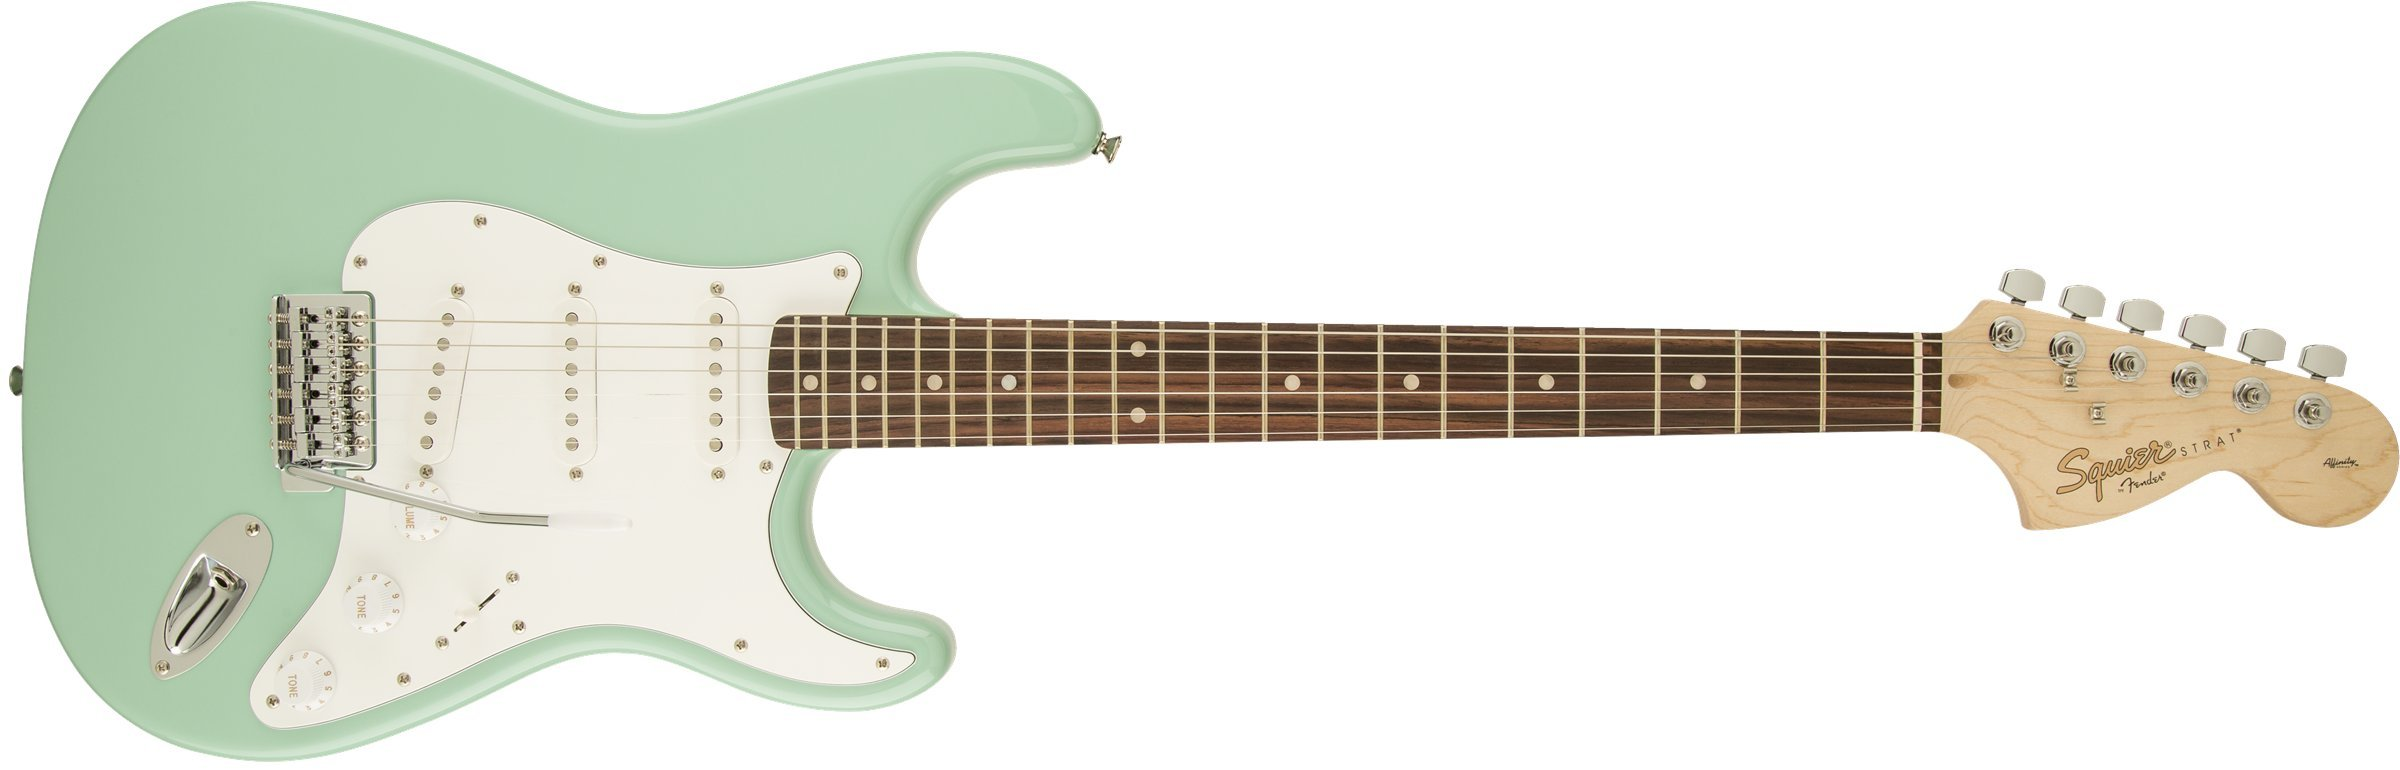 Squier by Fender Affinity Series Stratocaster Electric Guitar - Laurel Fingerboard - Surf Green by Fender